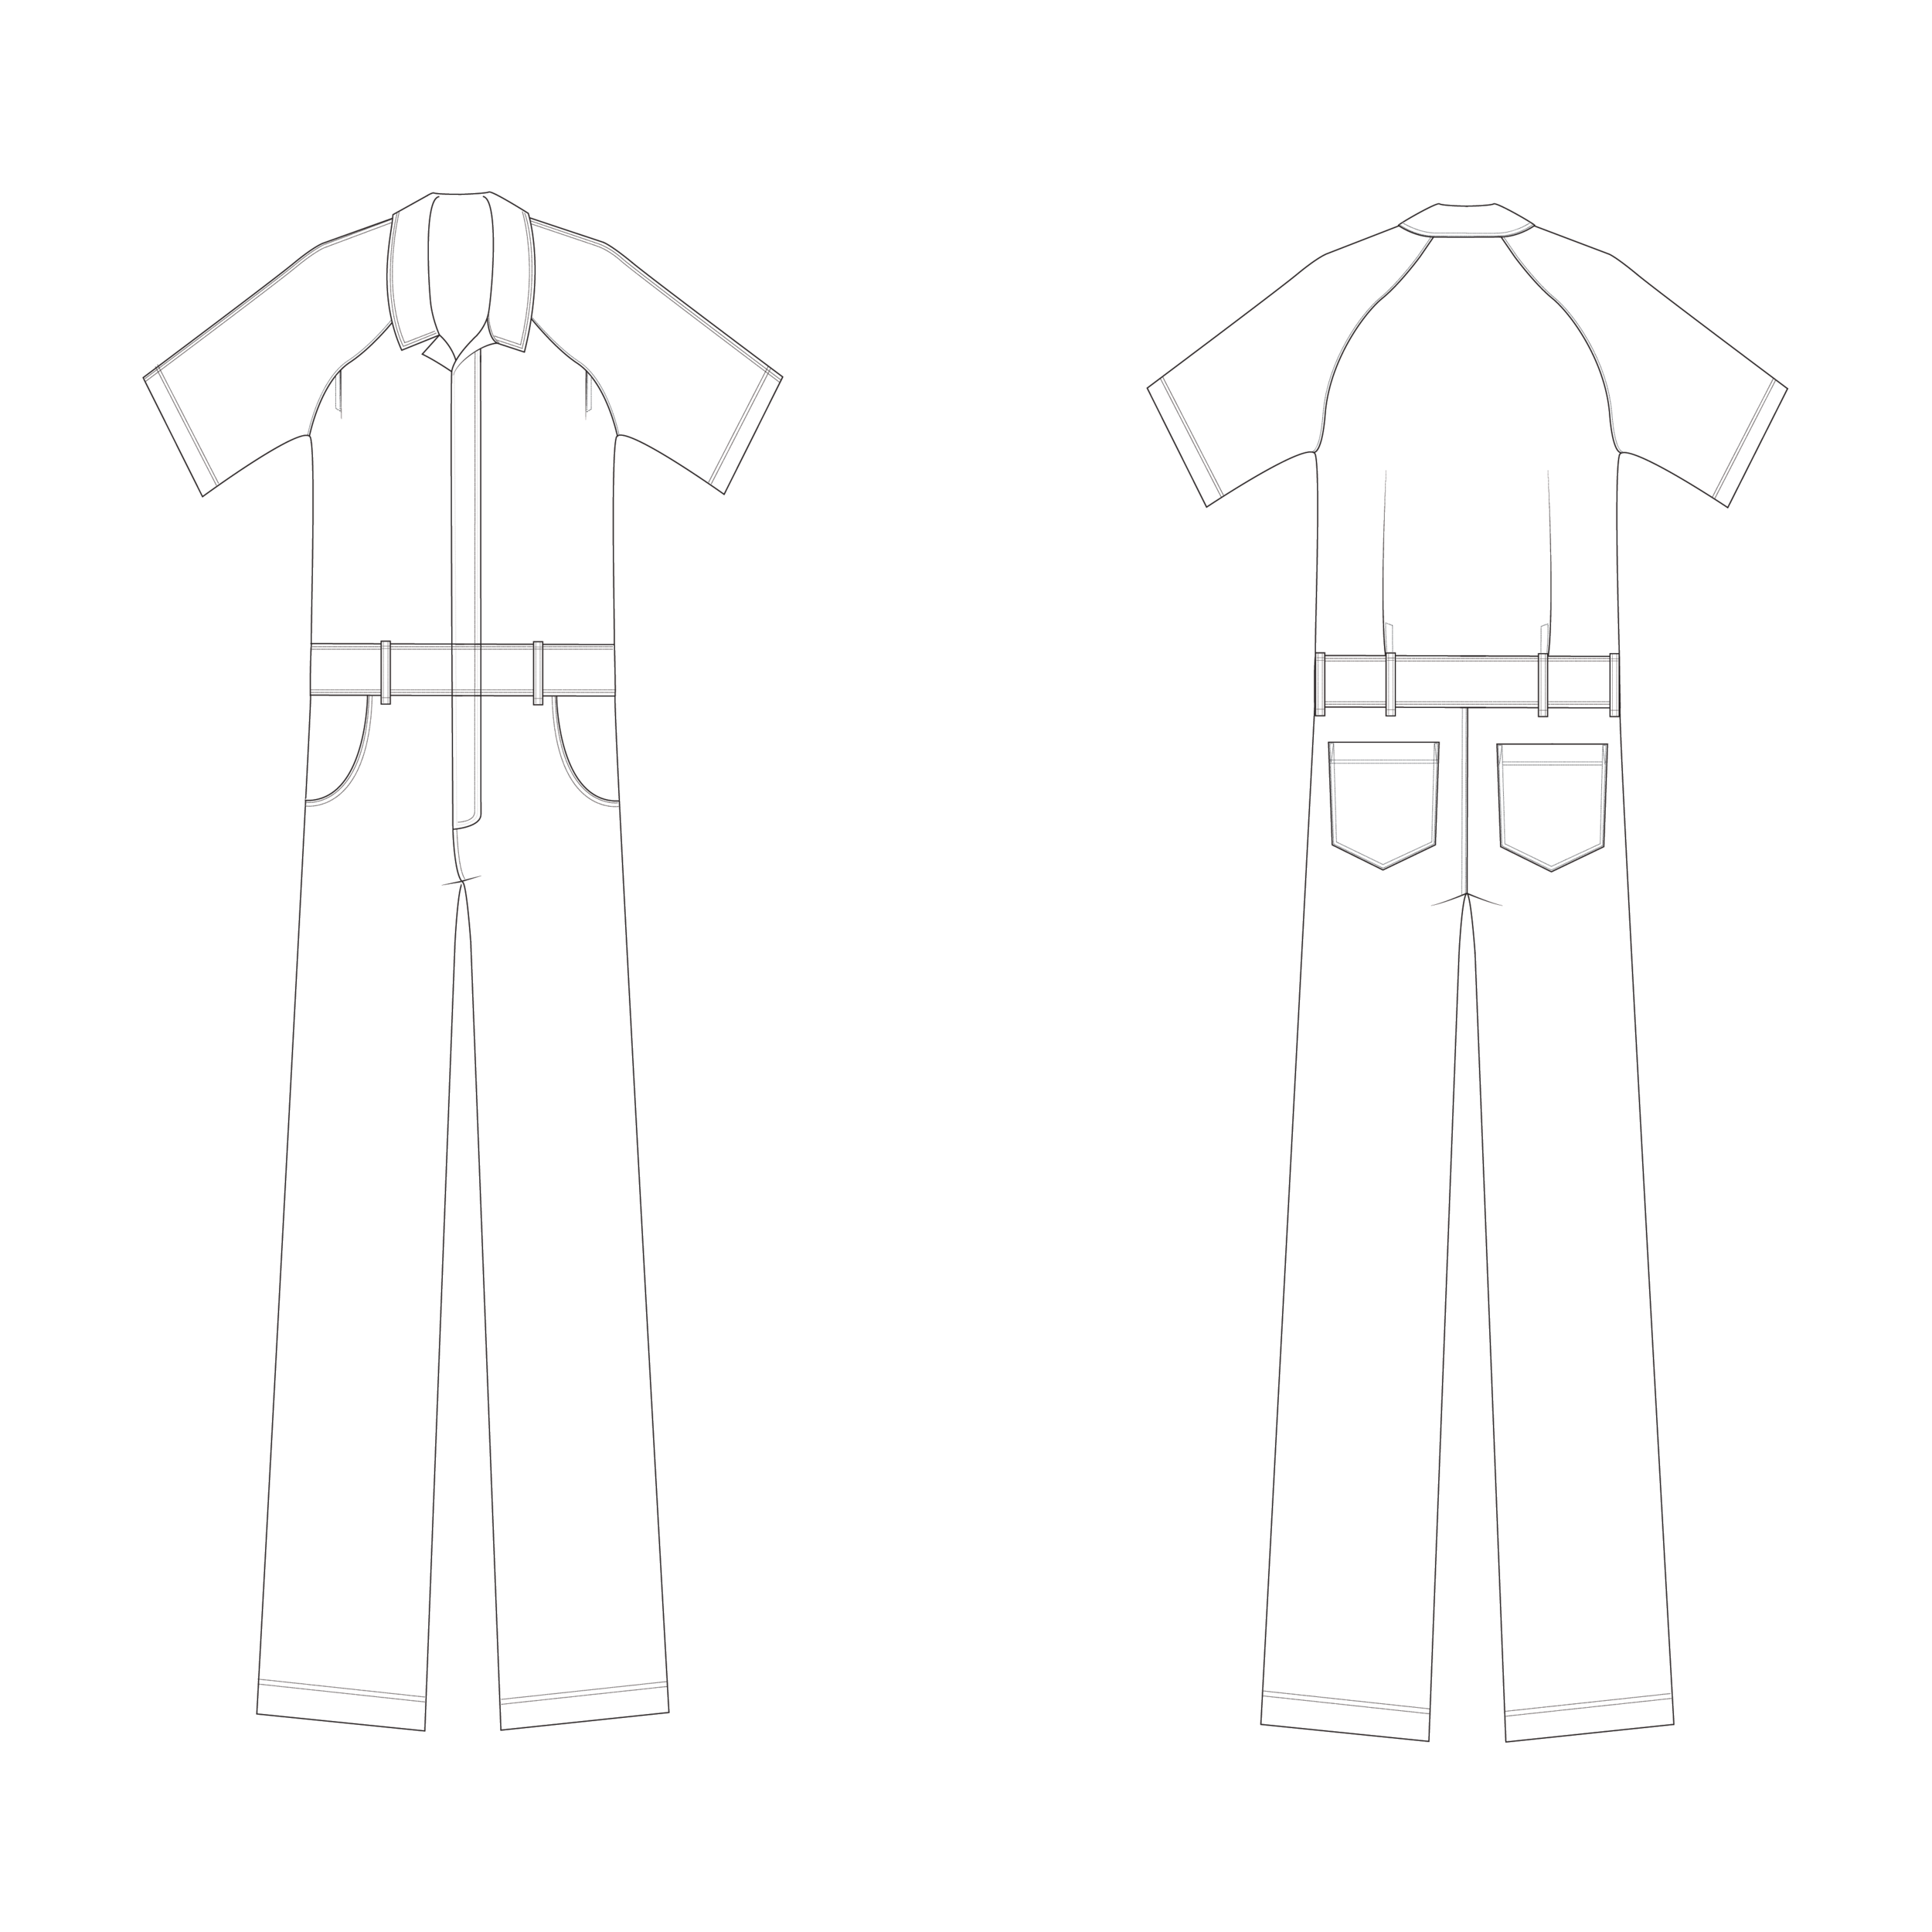 jumpsuit-fitted-Artboard 1@2x.png